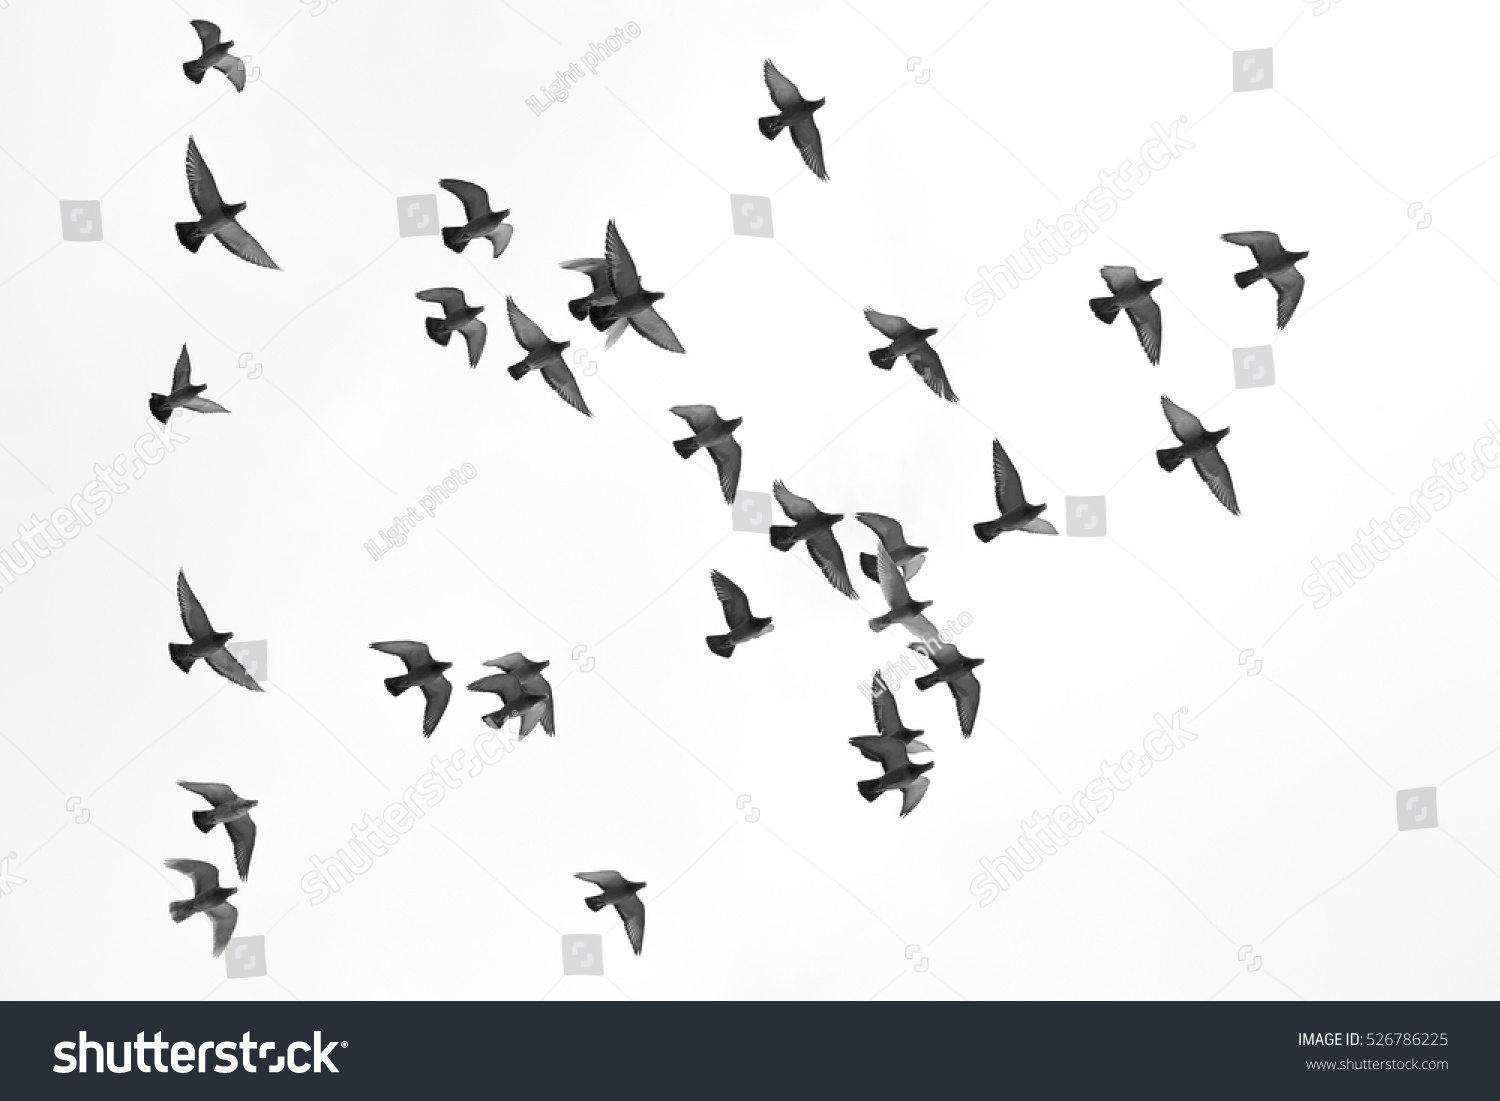 Many pigeons birds flying in the sky Black and white